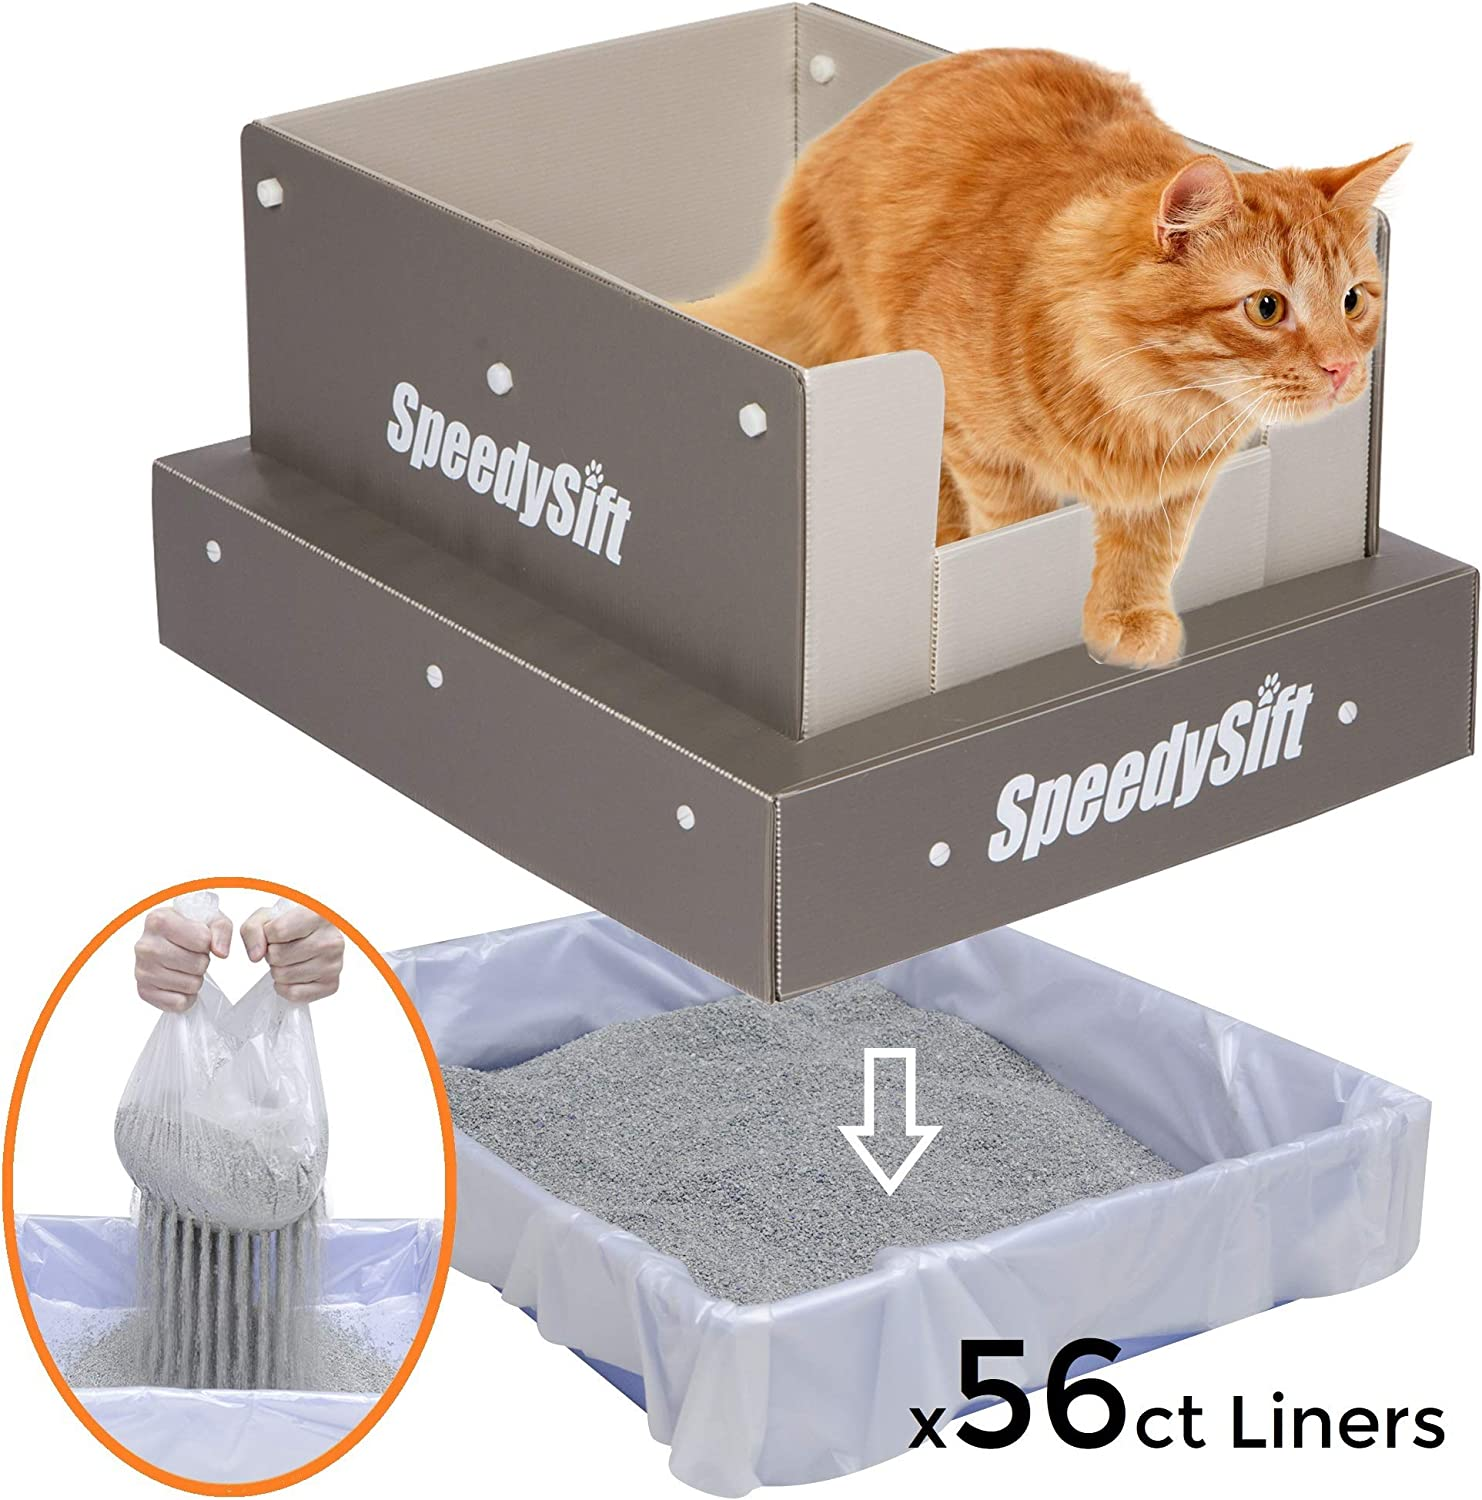 SpeedySift Cat Litter Box with Disposable Sifting Liners, Stain Resistant Plastic High Sides (5 Year Warranty), Large